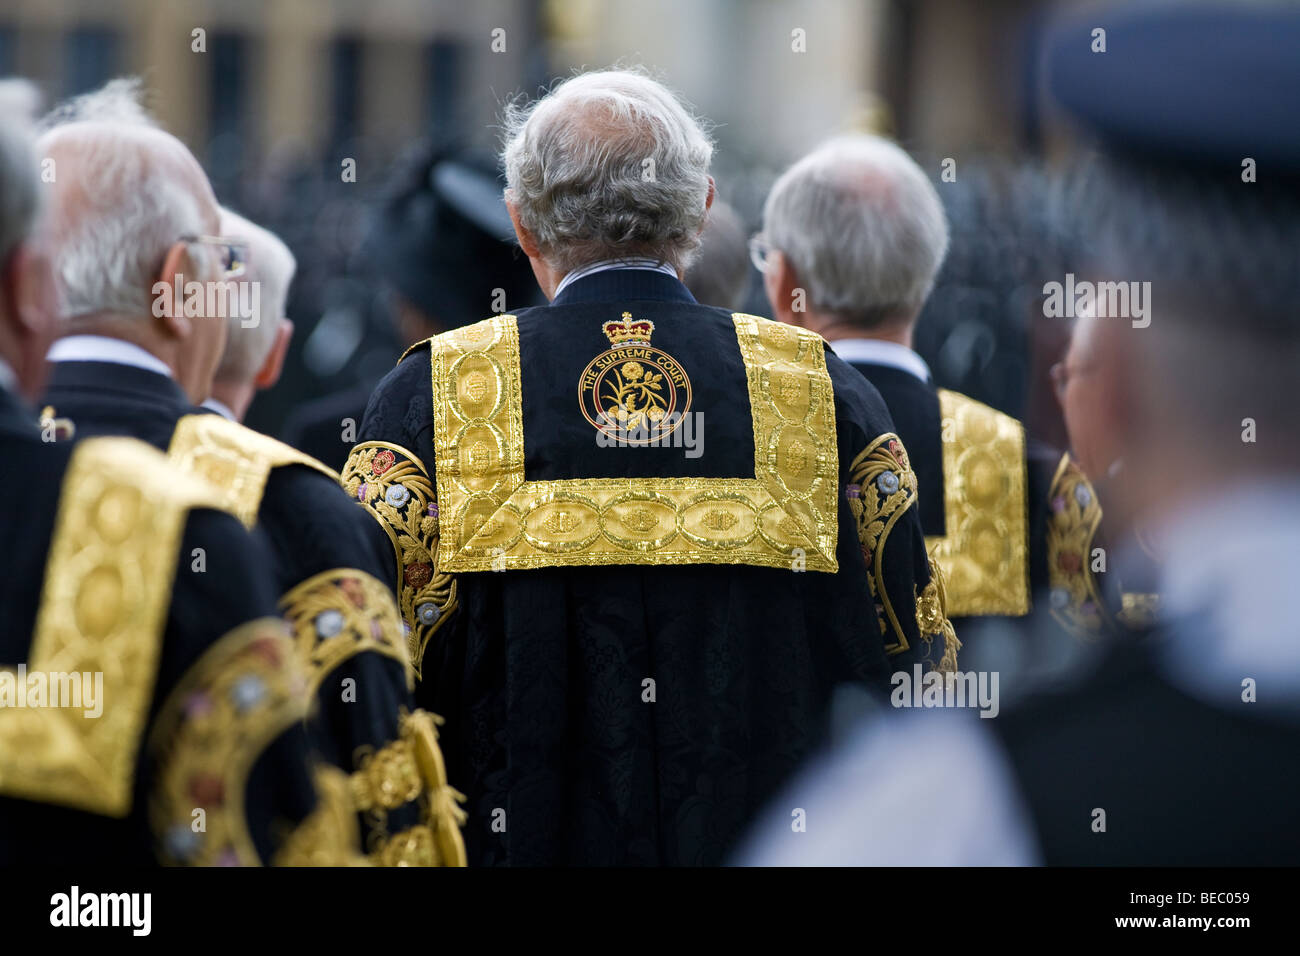 Supreme Court of the United Kingdom Justices procession from Middlesex Guildhall - Stock Image